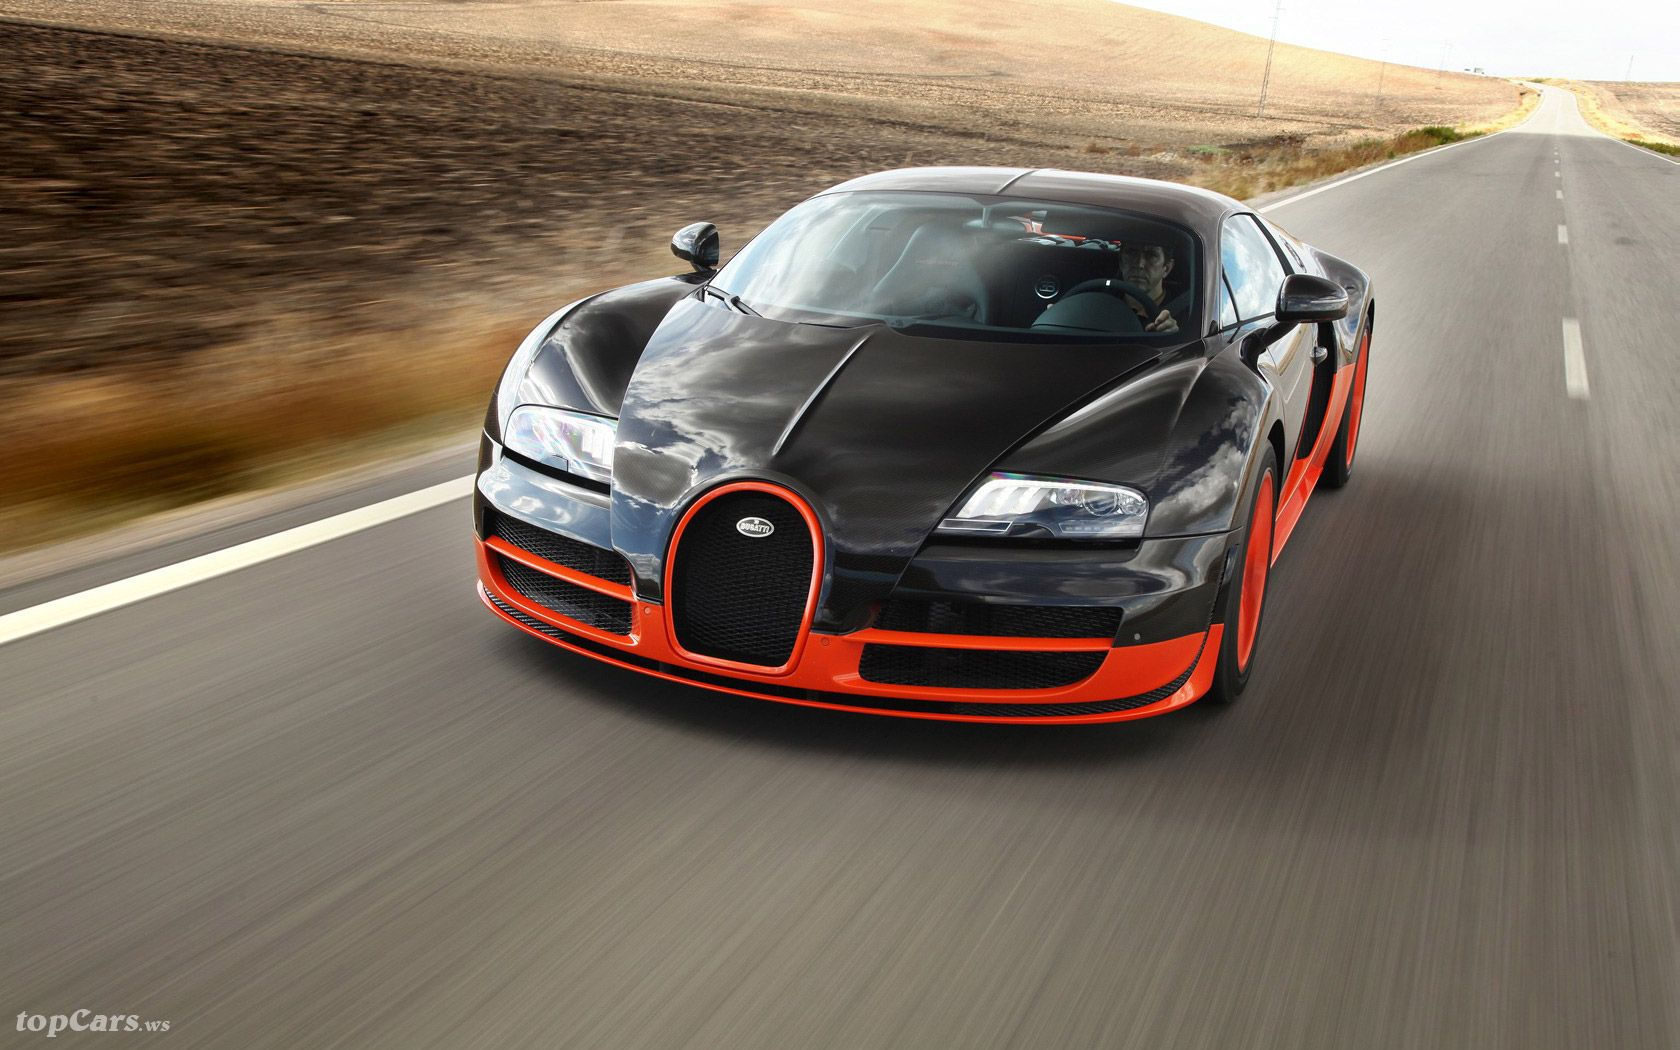 Captivating Bugatti Veyron Super Sport TOP 10 MOST EXPENSIVE CARS IN THE WORLD 2013    Love The